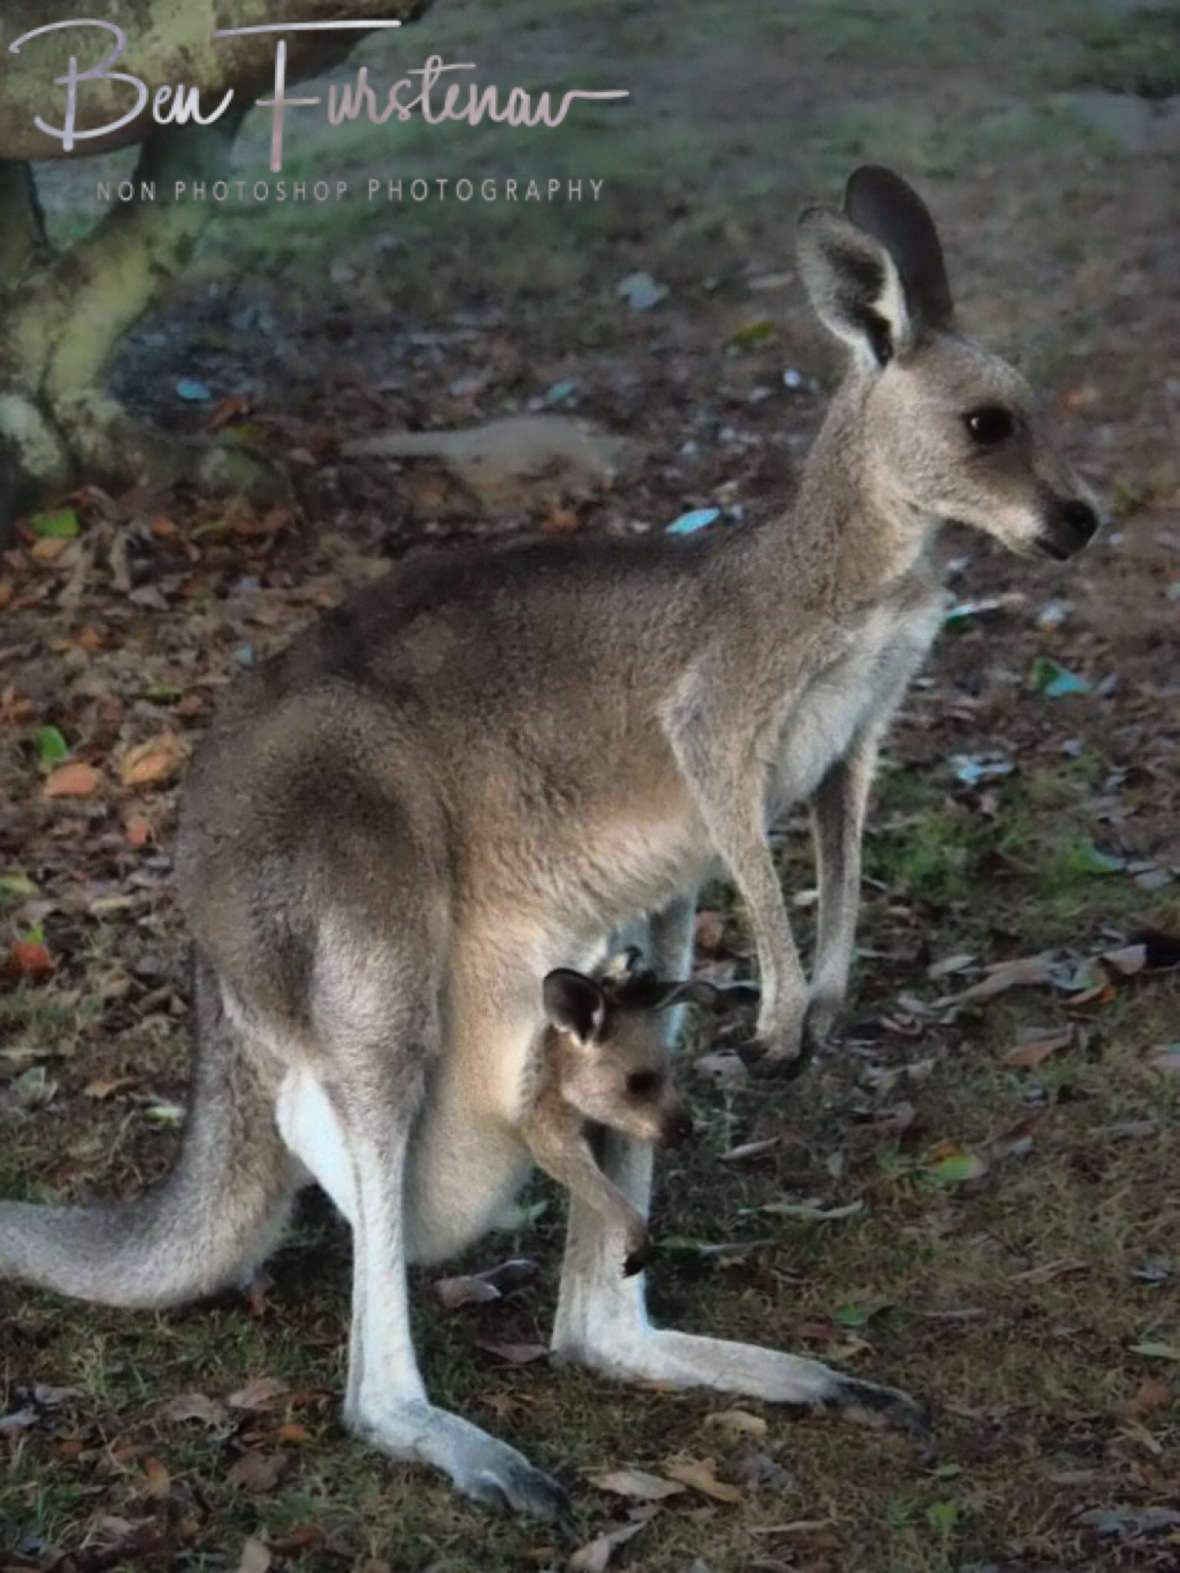 A vary mom with a Joey in her pouch, Gibraltar Range National Park, NSW, Australia